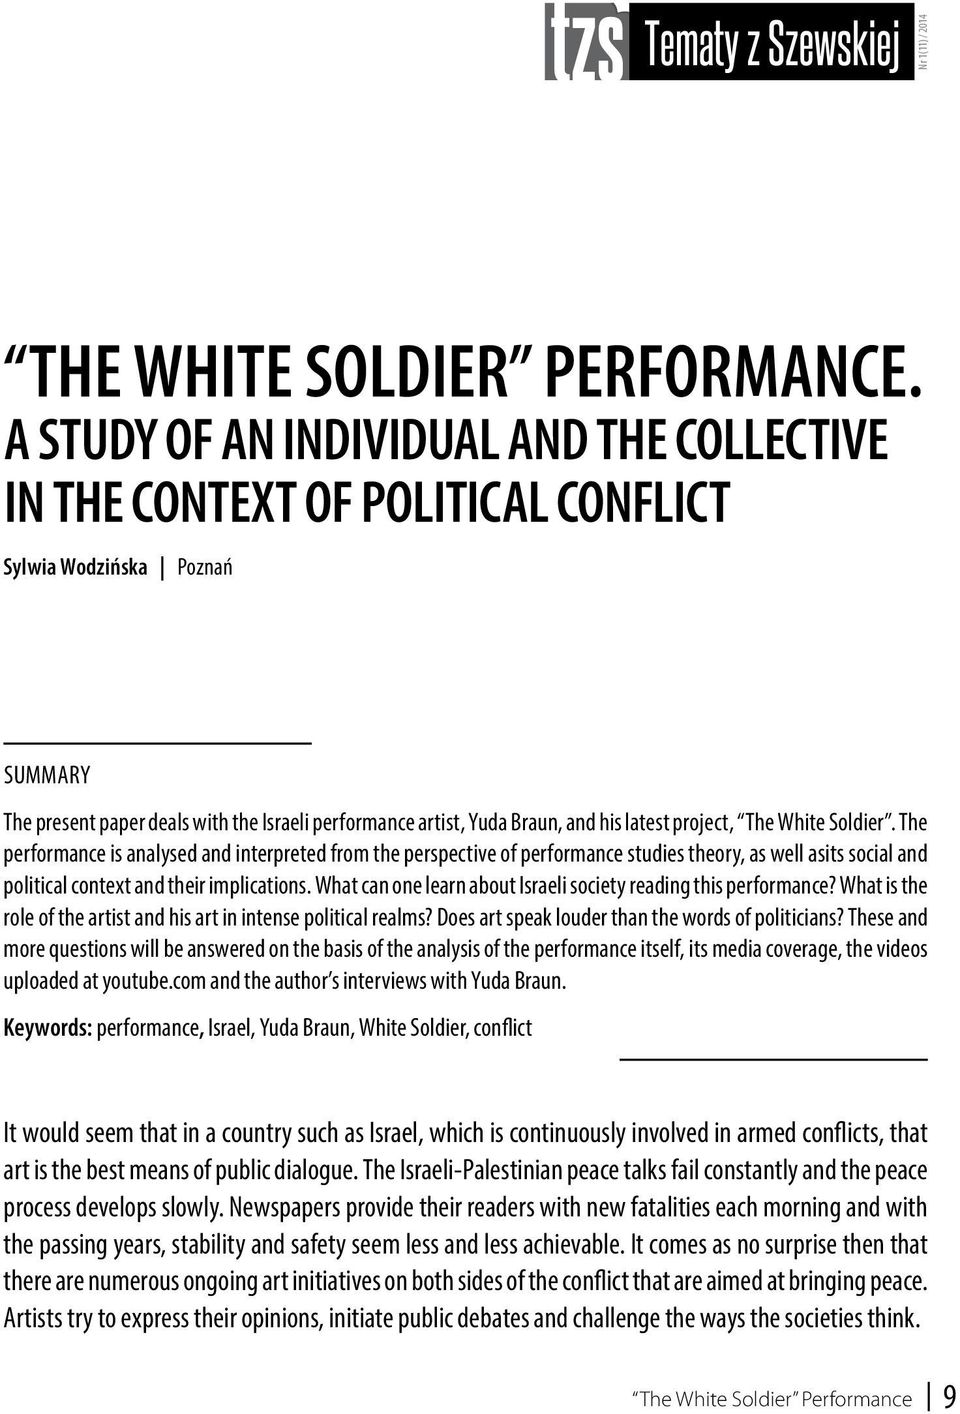 latest project, The White Soldier. The performance is analysed and interpreted from the perspective of performance studies theory, as well asits social and political context and their implications.